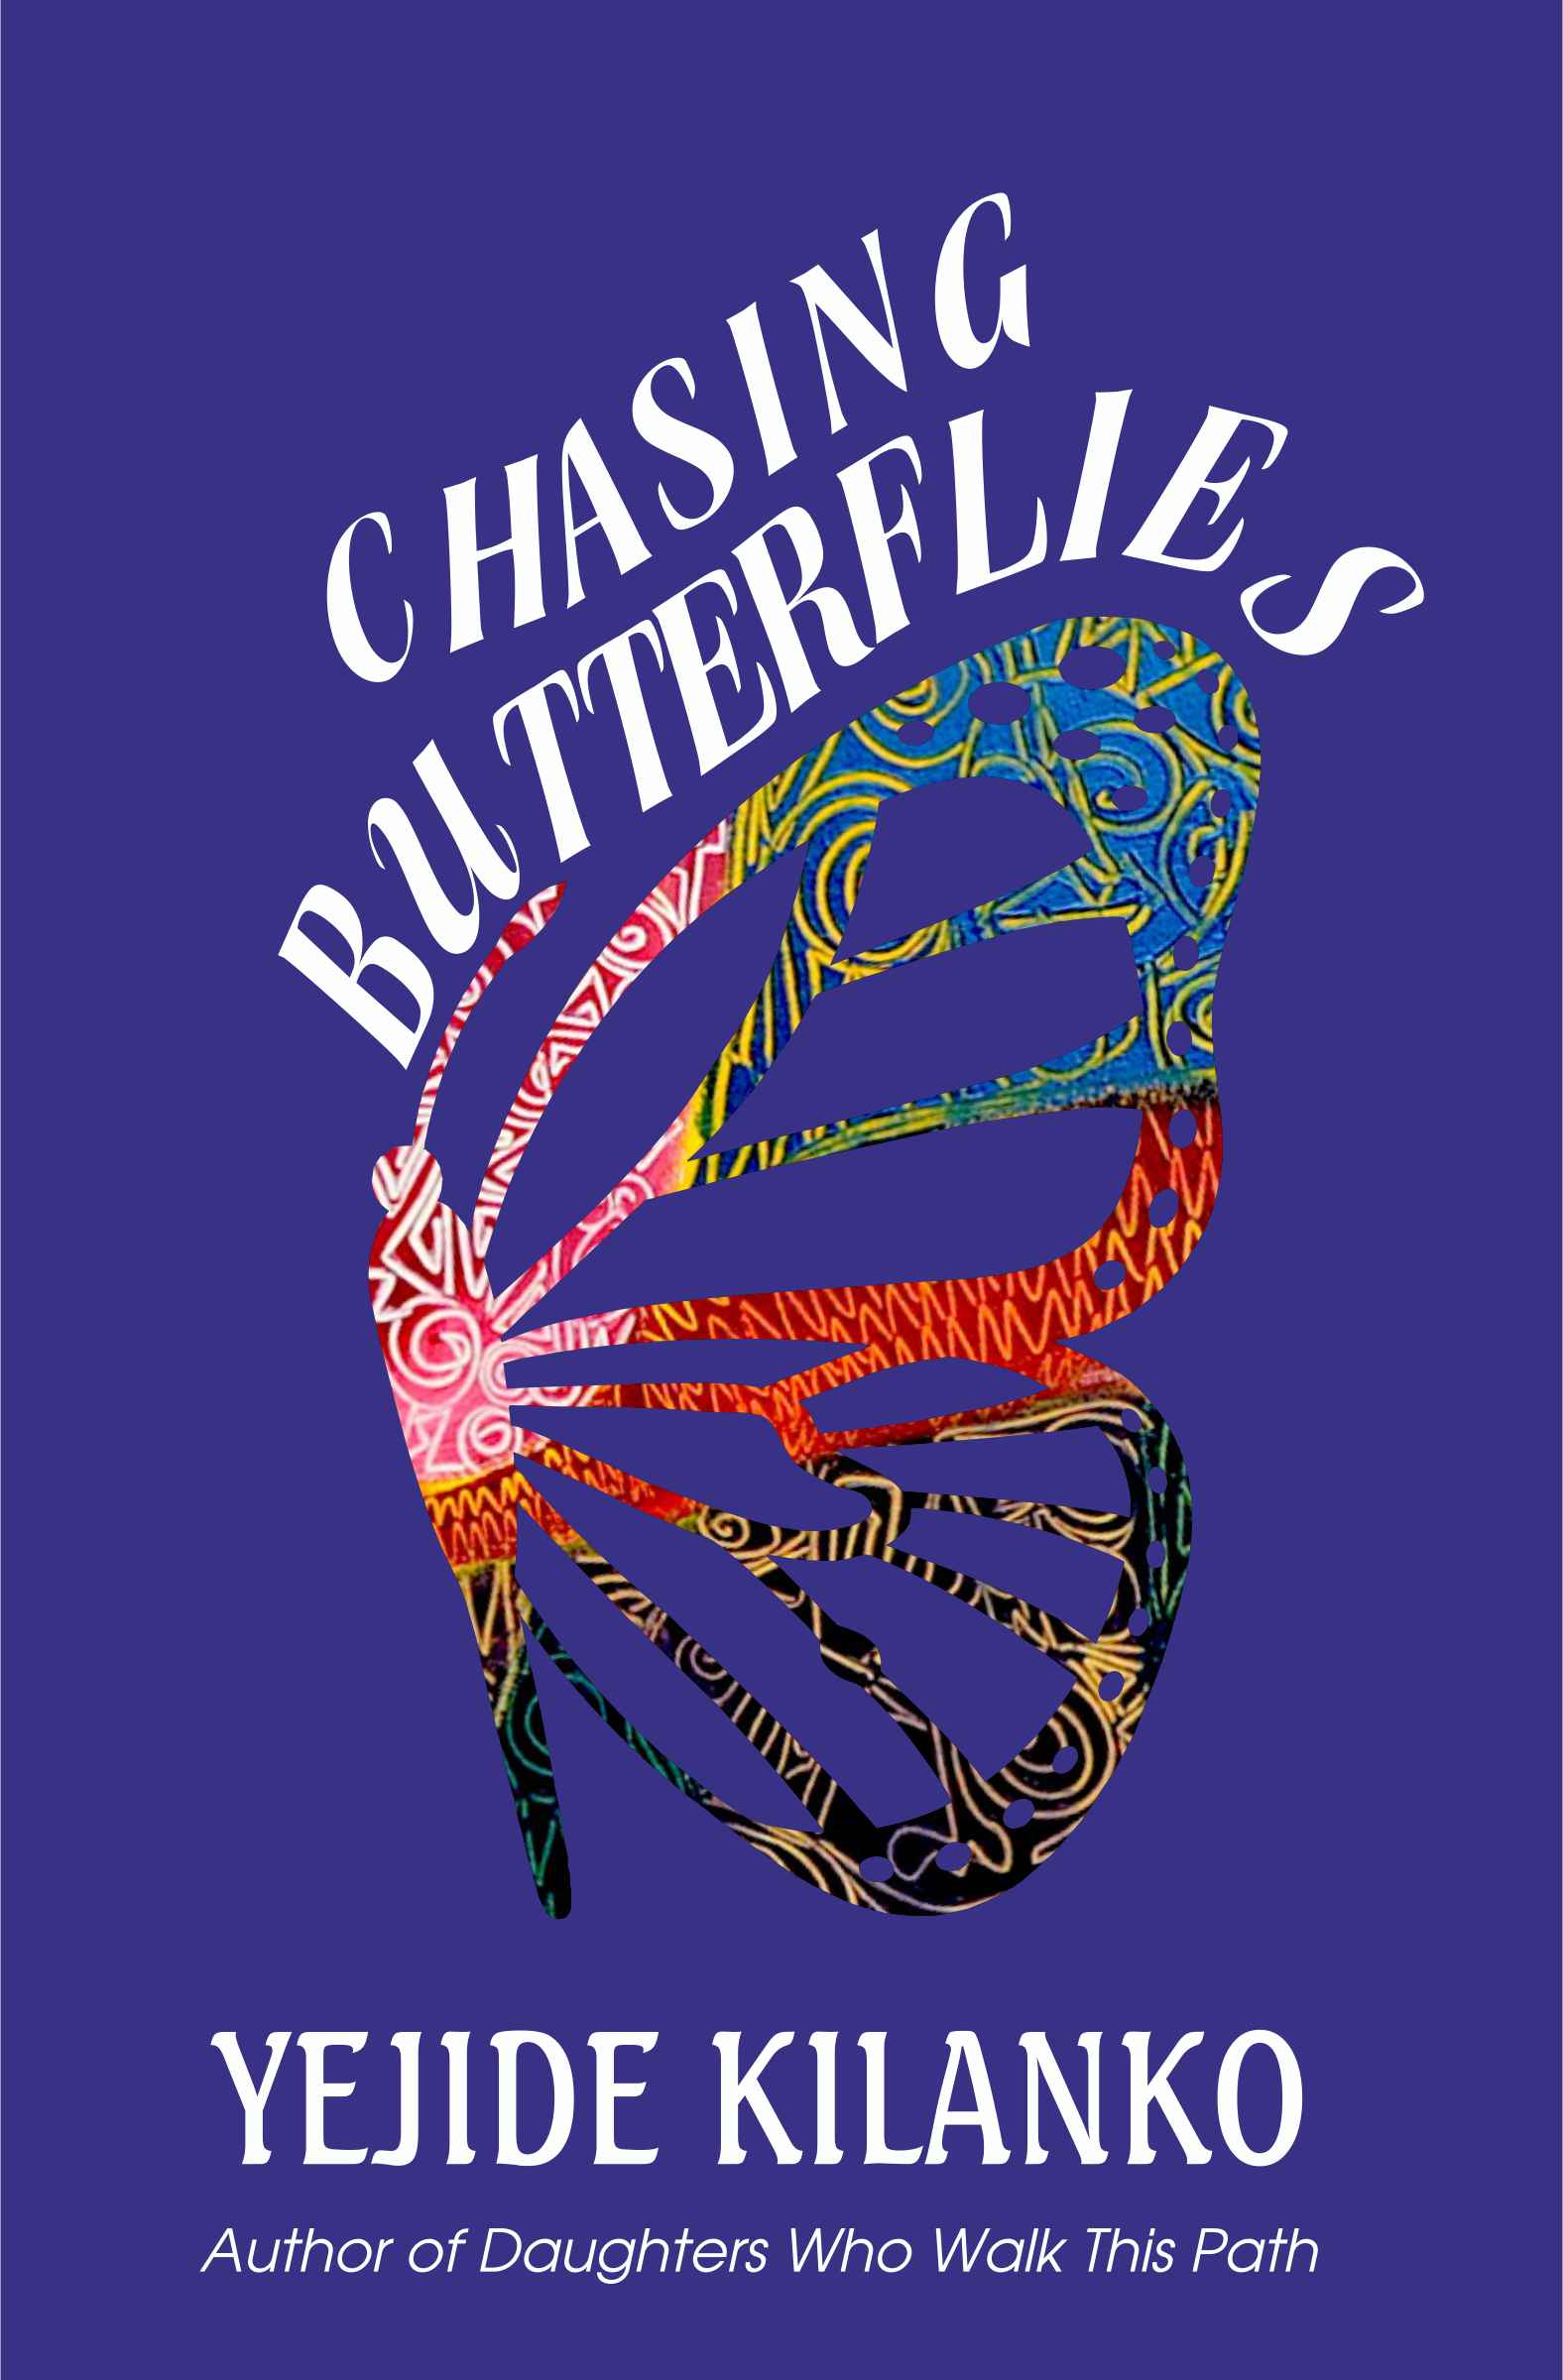 CHASING BUTTERFLIES Book cover.